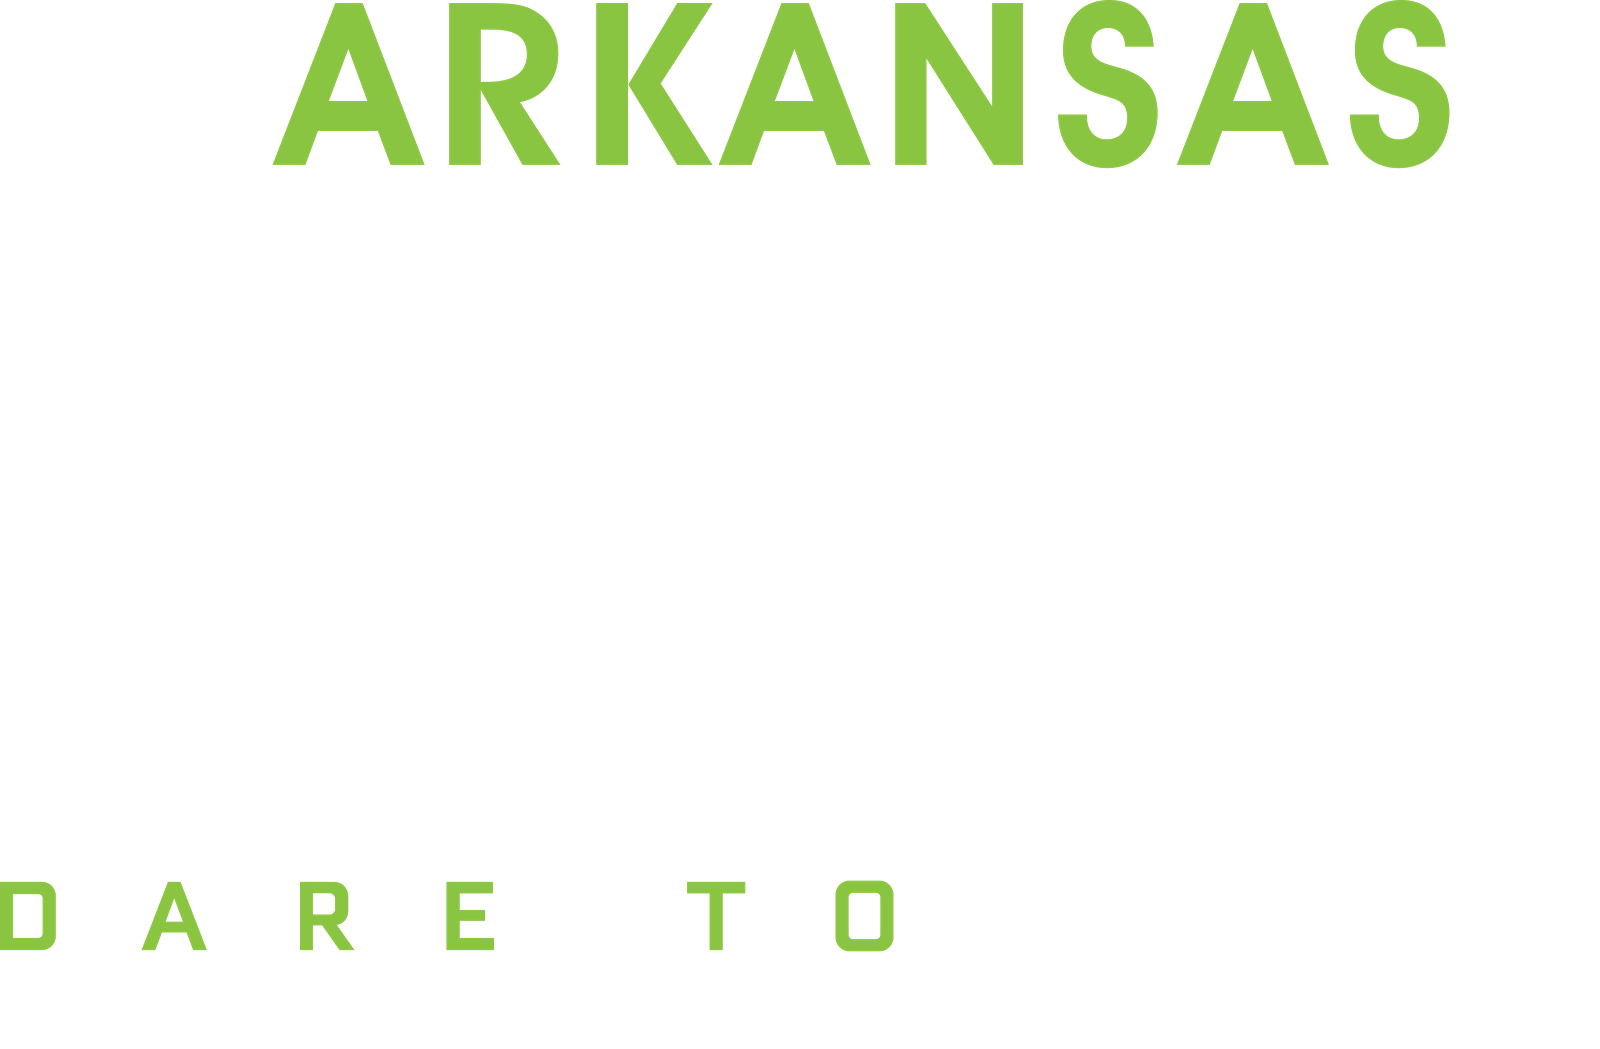 The Arkansas CW